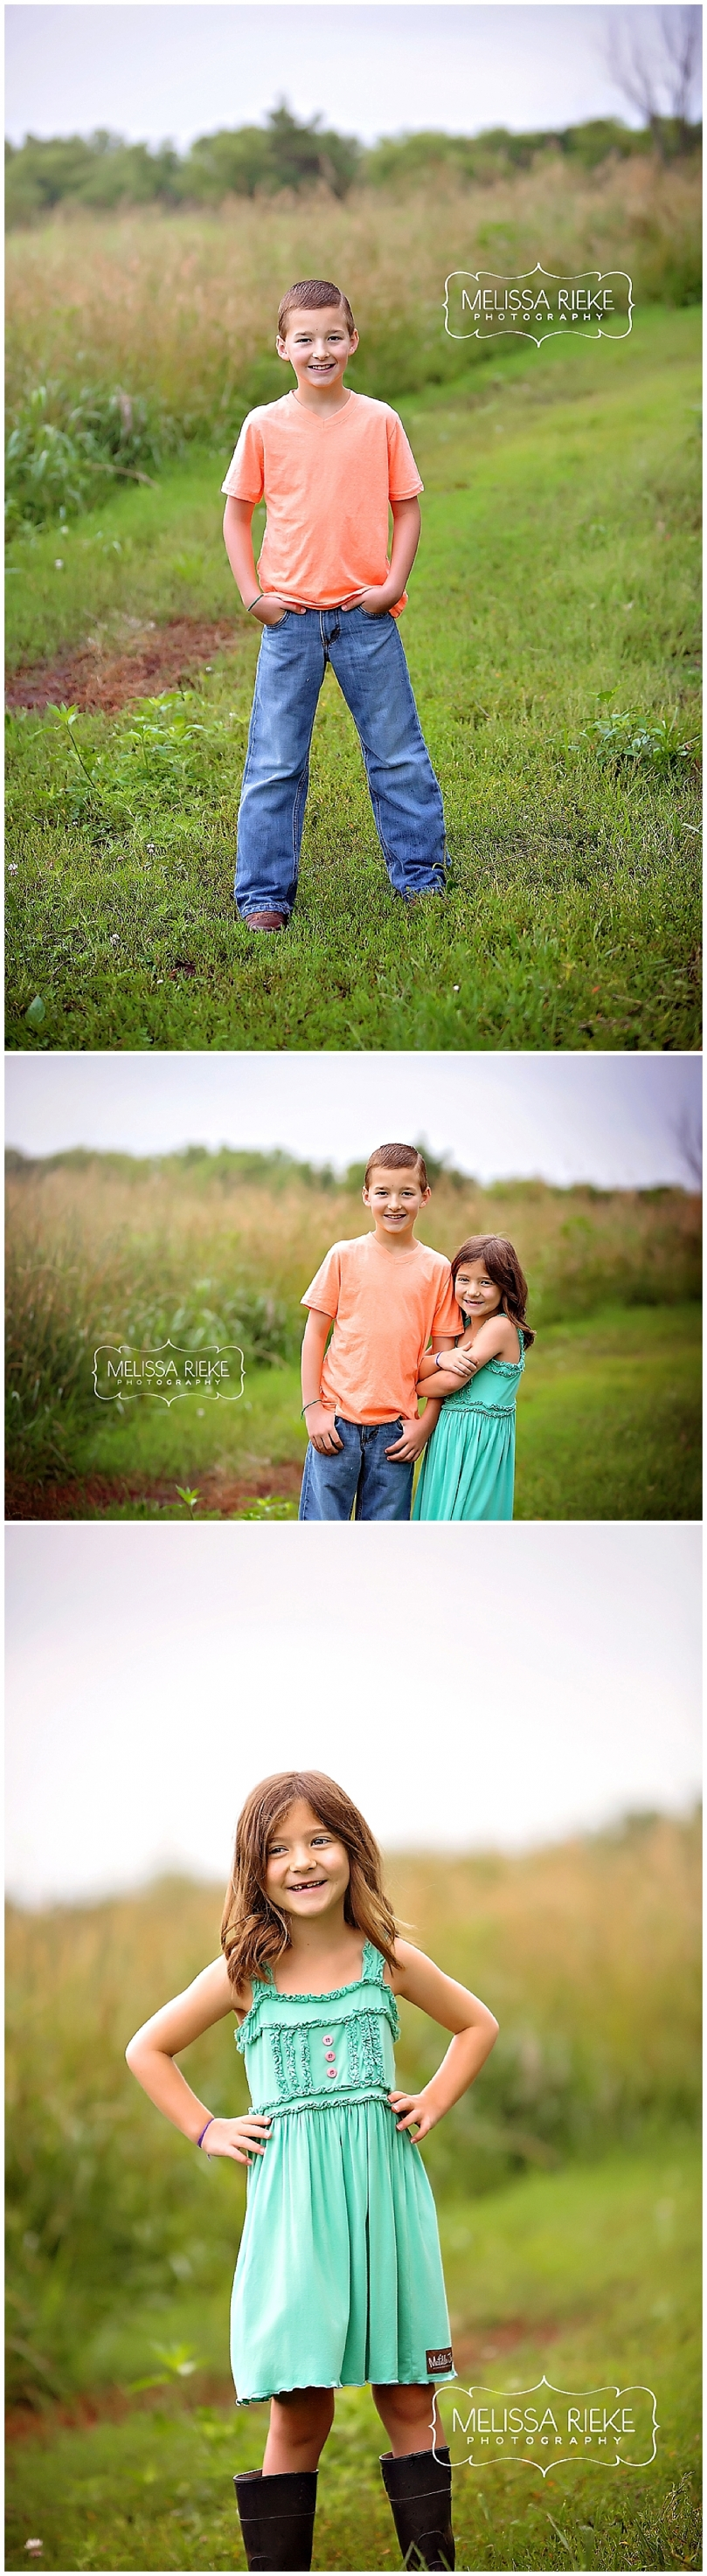 Kansas City Family Photographer | Melissa Rieke Photography www.melissariekephotography.com